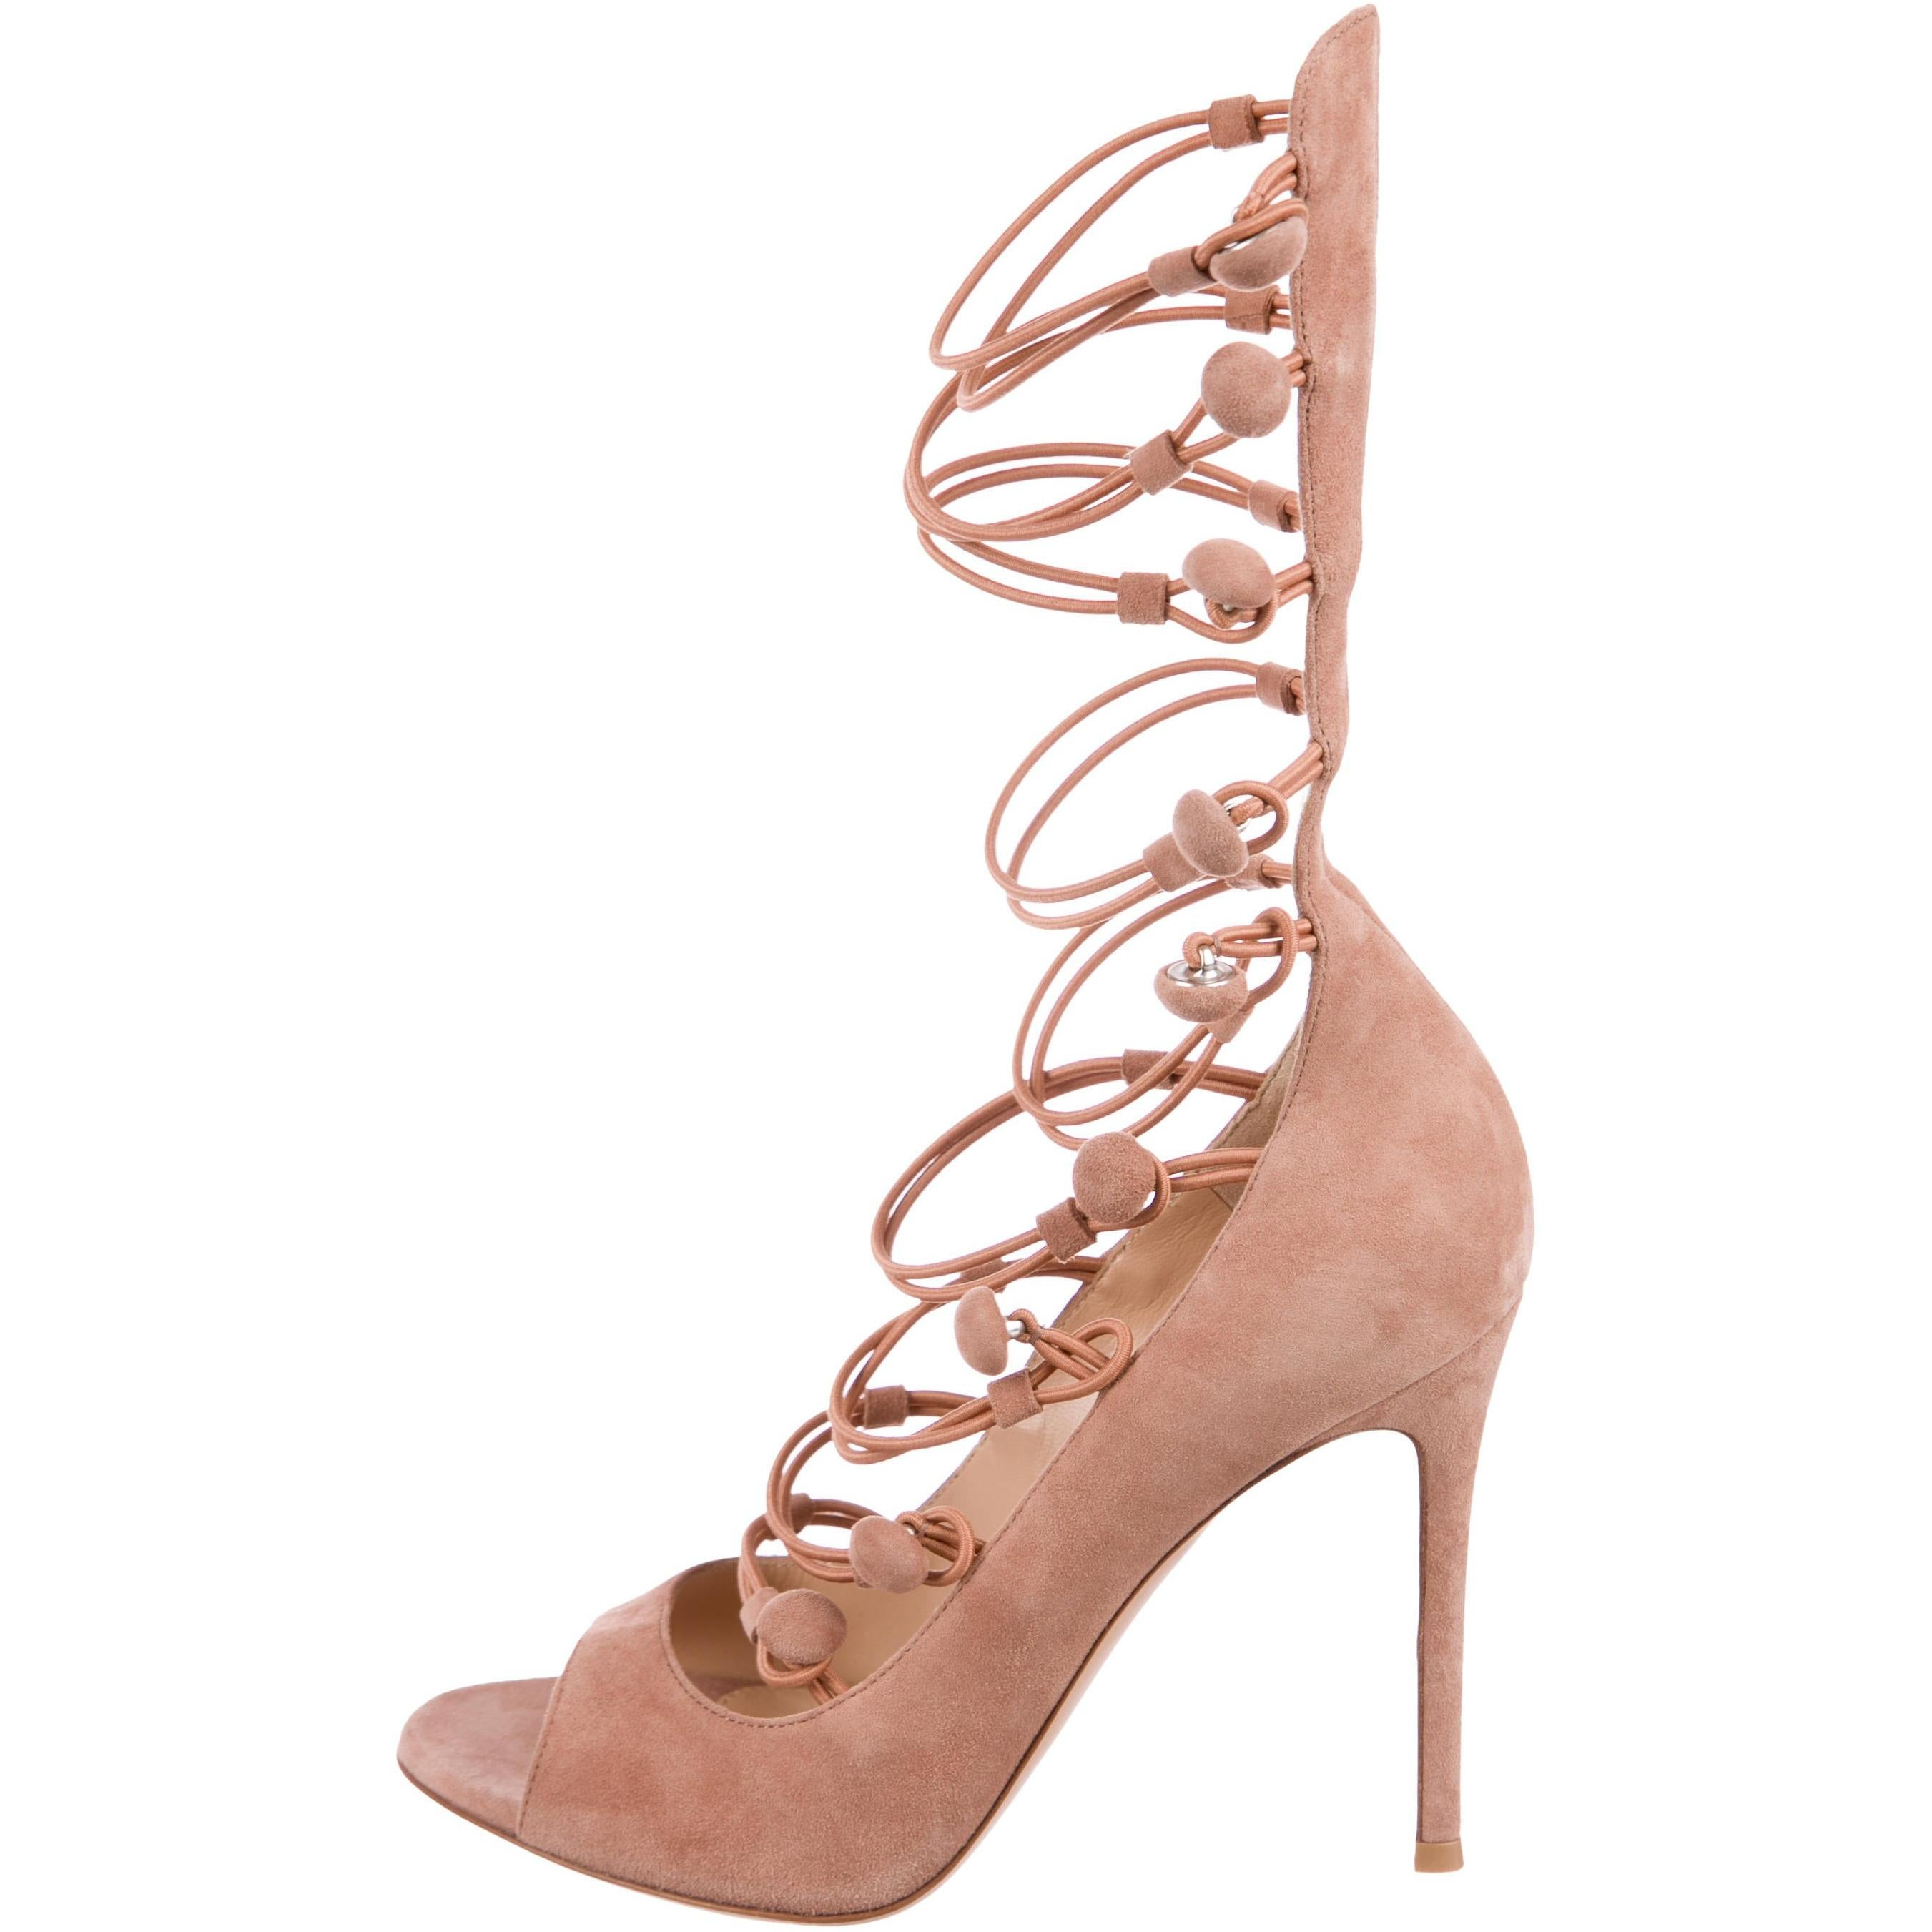 d4f3d8f46f2 Gianvito Rossi NEW Nude Leather Silver Evening Heels Sandals in Box For  Sale at 1stdibs